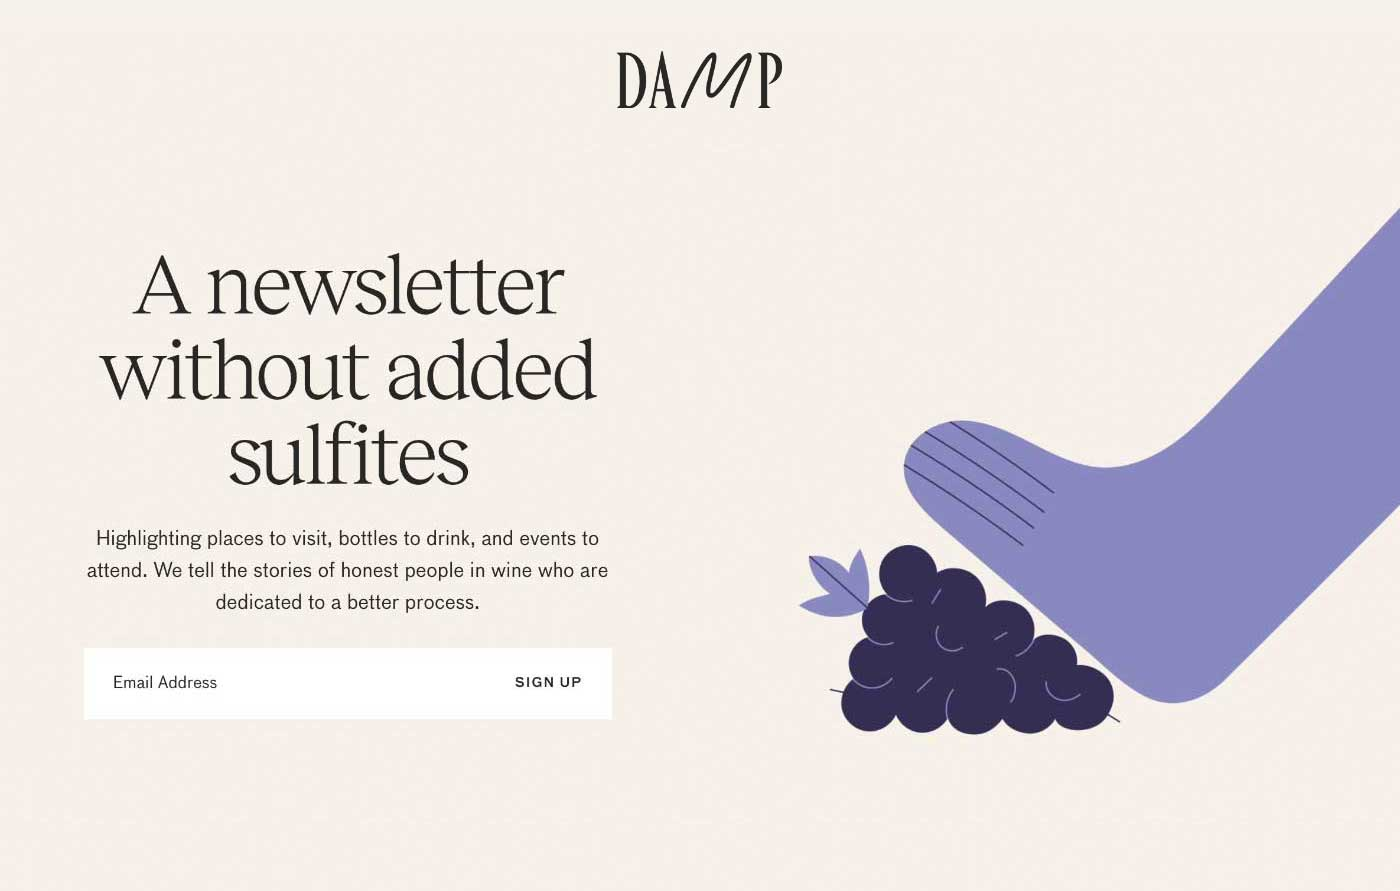 Screenshot of the newsletter landing page from Damp